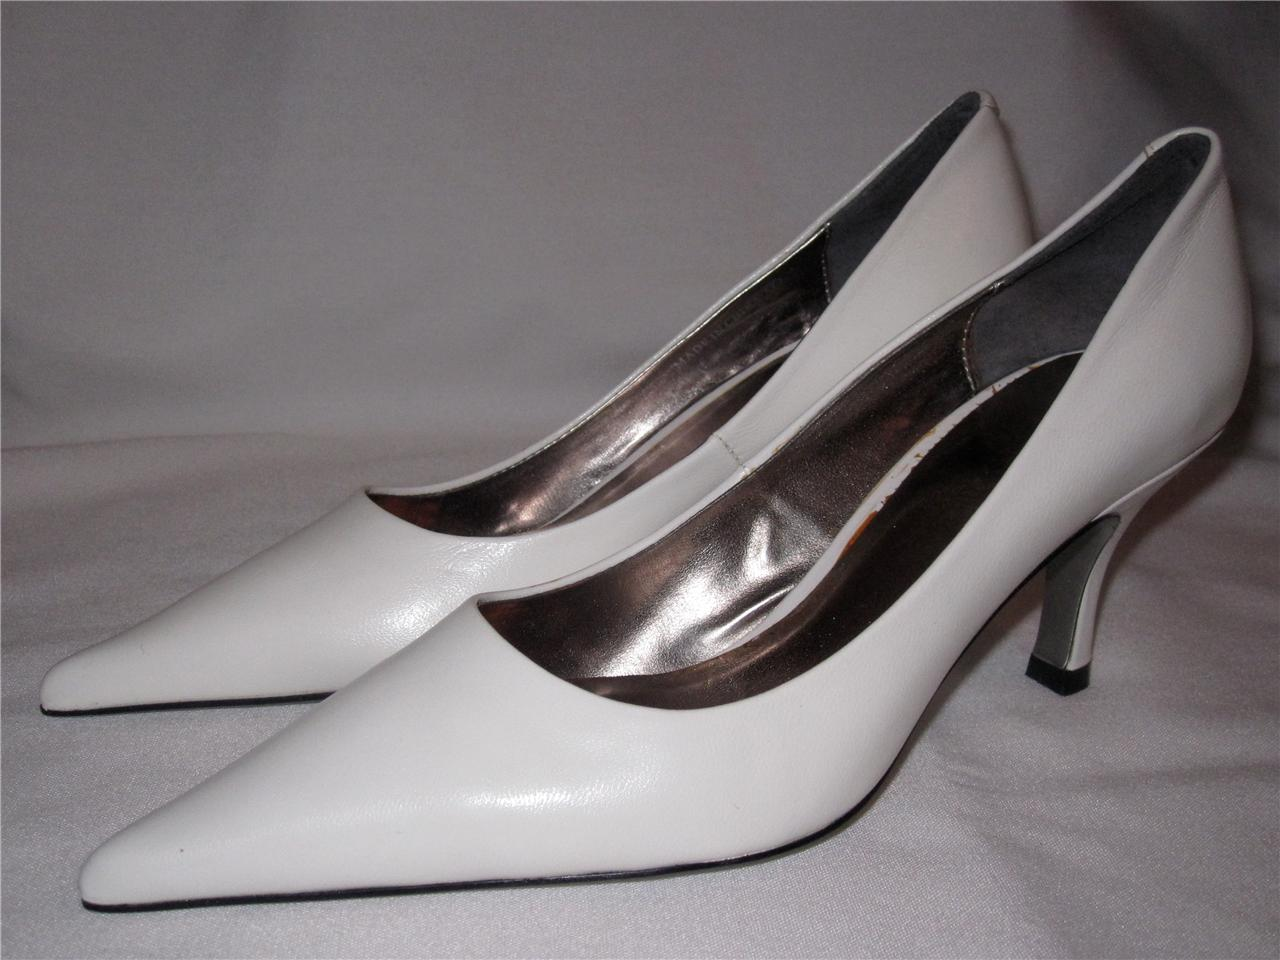 """Two Lips Telma Pumps Heels 2 1/2"""" Heel Leather Upper Classic New White or Tan"""